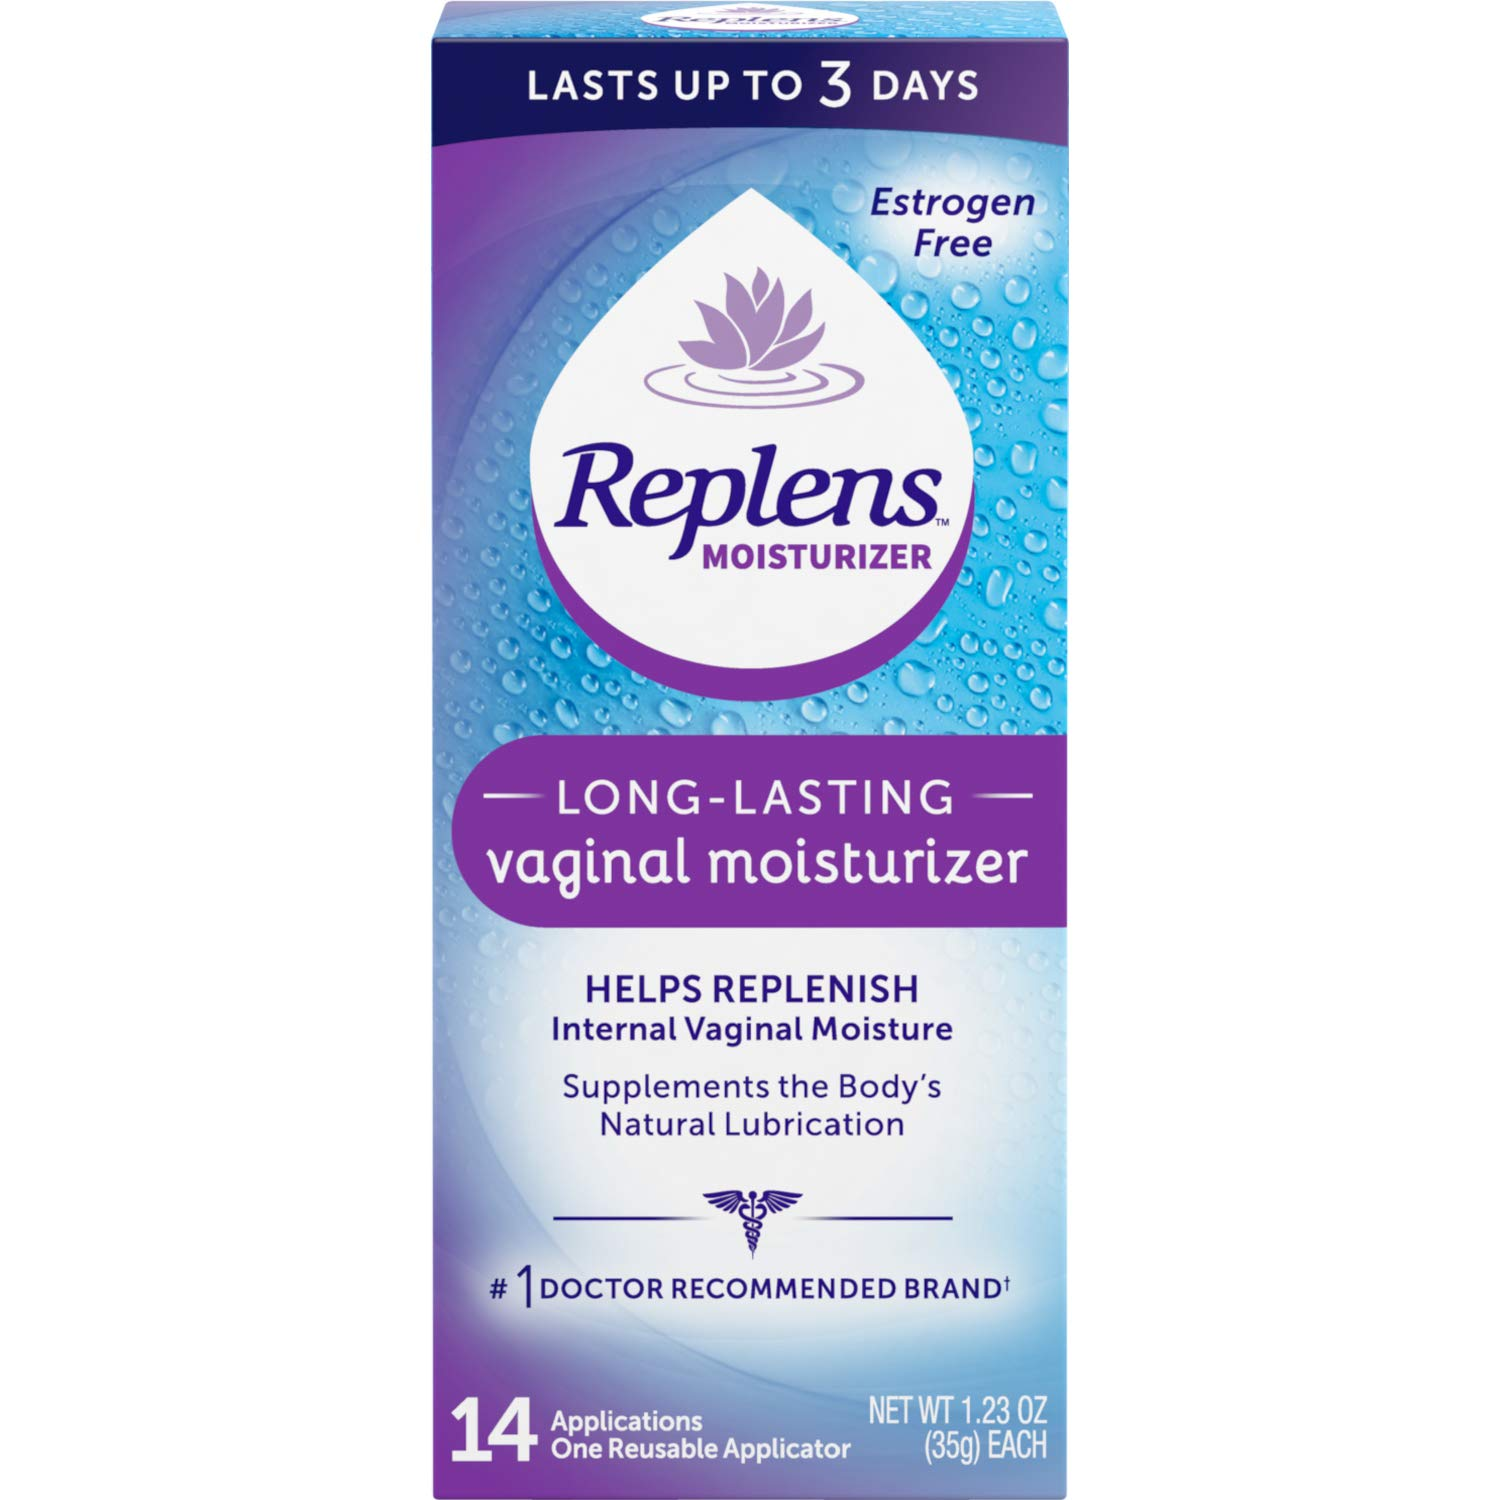 Replens Replens Long Lasting Vaginal Moisturizer, 14 Applications 1.23 oz (Pack of 2) by Replens